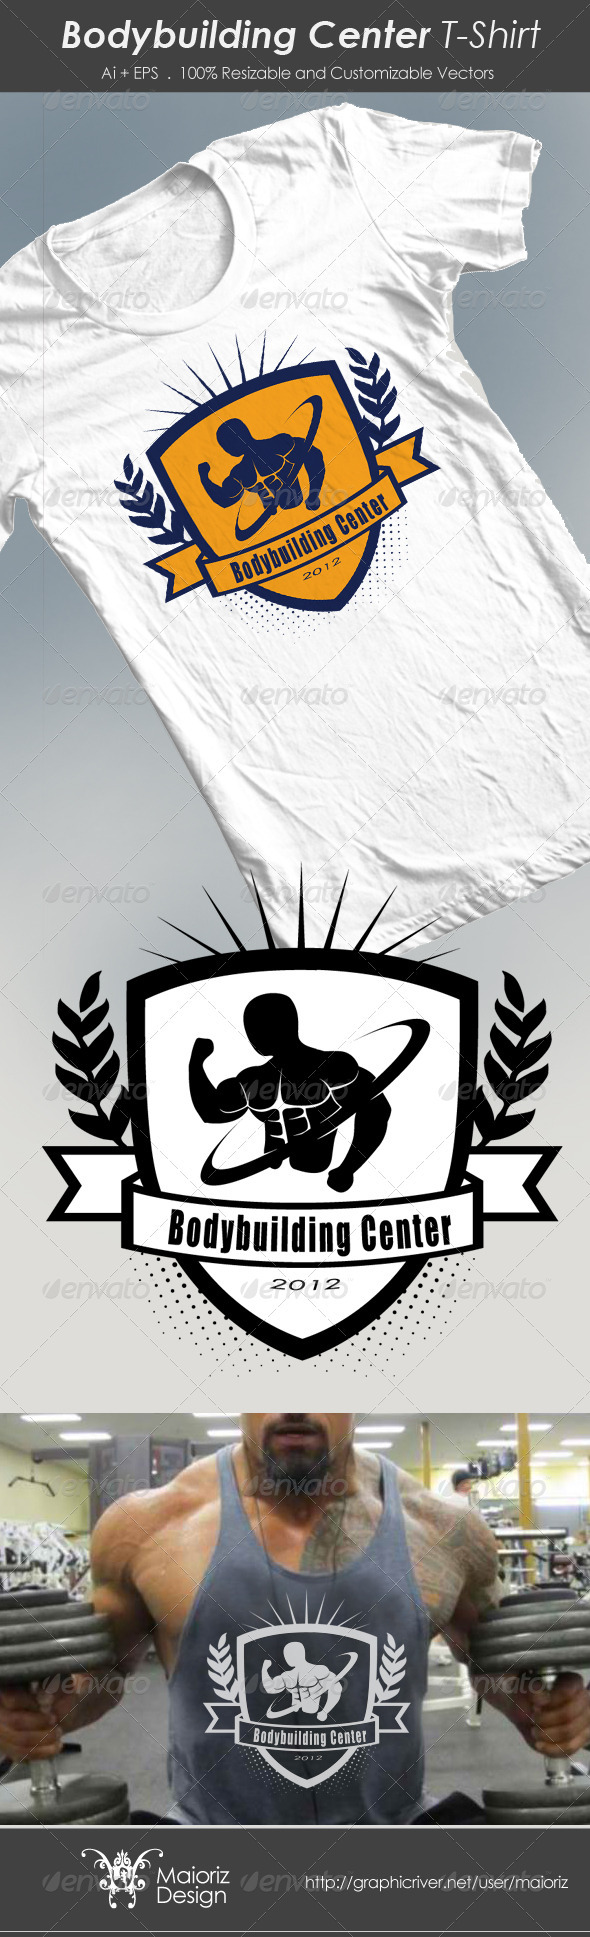 Bodybuilding Center Tshirt - Sports & Teams T-Shirts